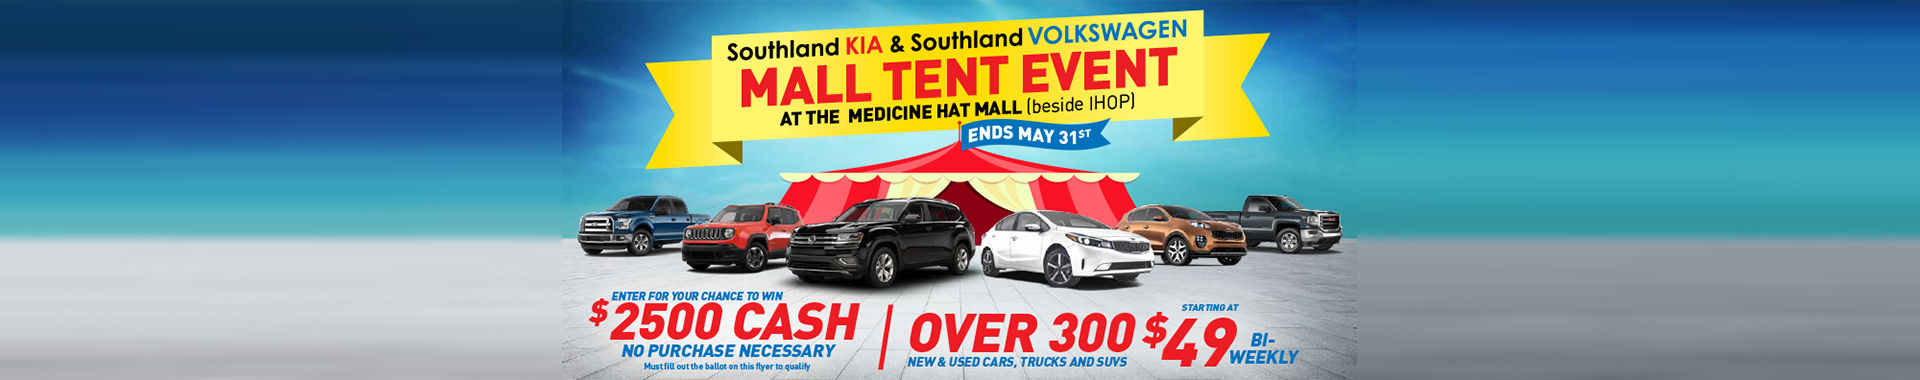 Mall Tent Sale 2018